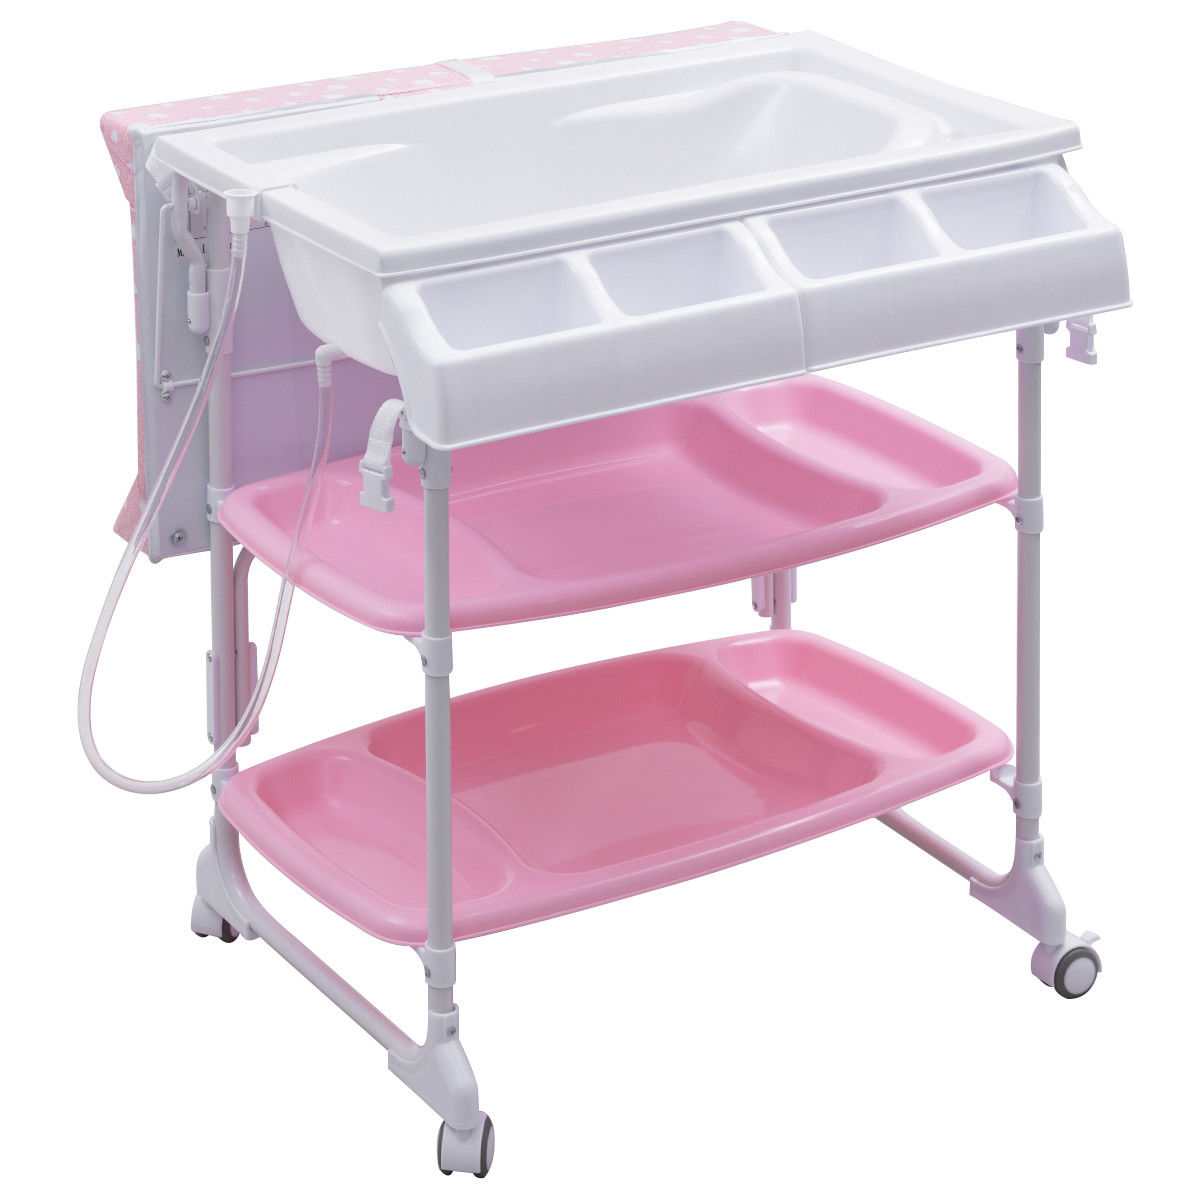 Costway Baby Infant Changing Table Diaper Station Organizer Storage w/ Tube - image 2 de 10